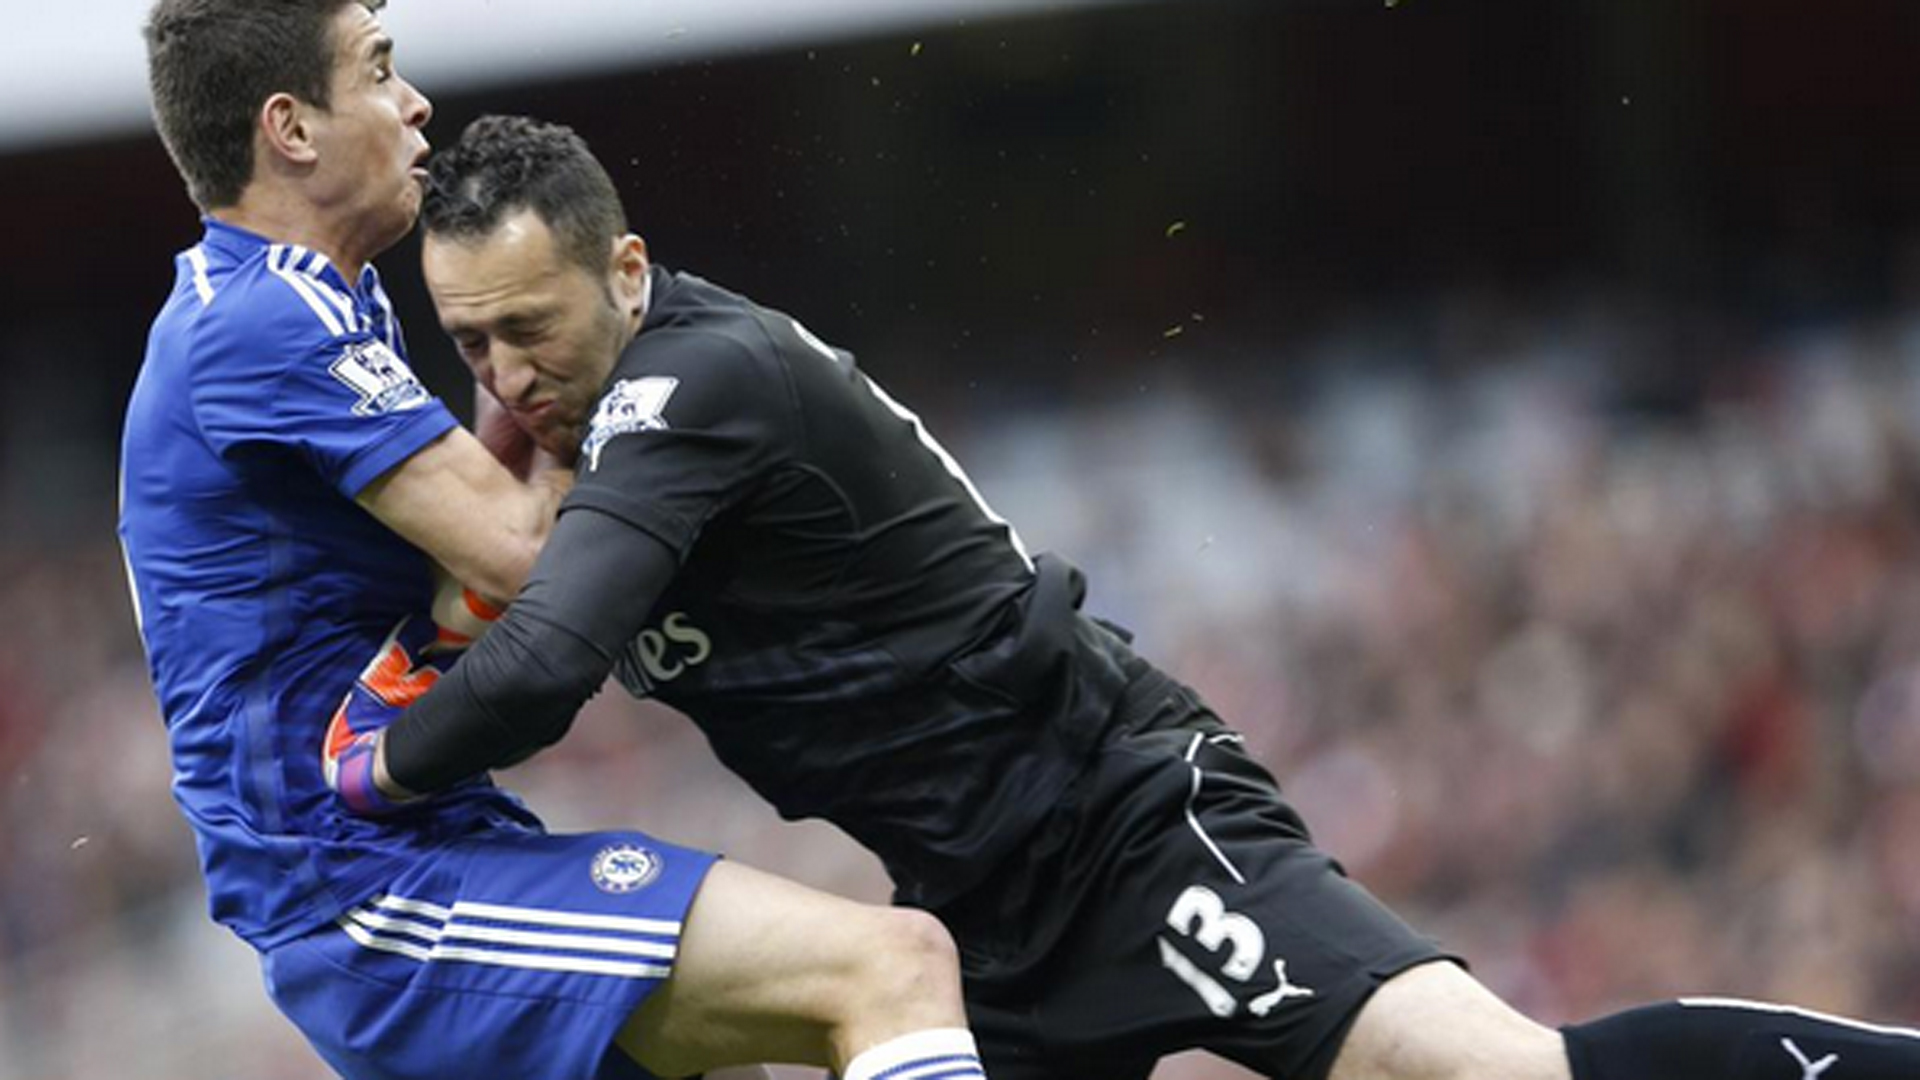 Chelsea player stays in game despite being knocked unconscious by Arsenal goalie